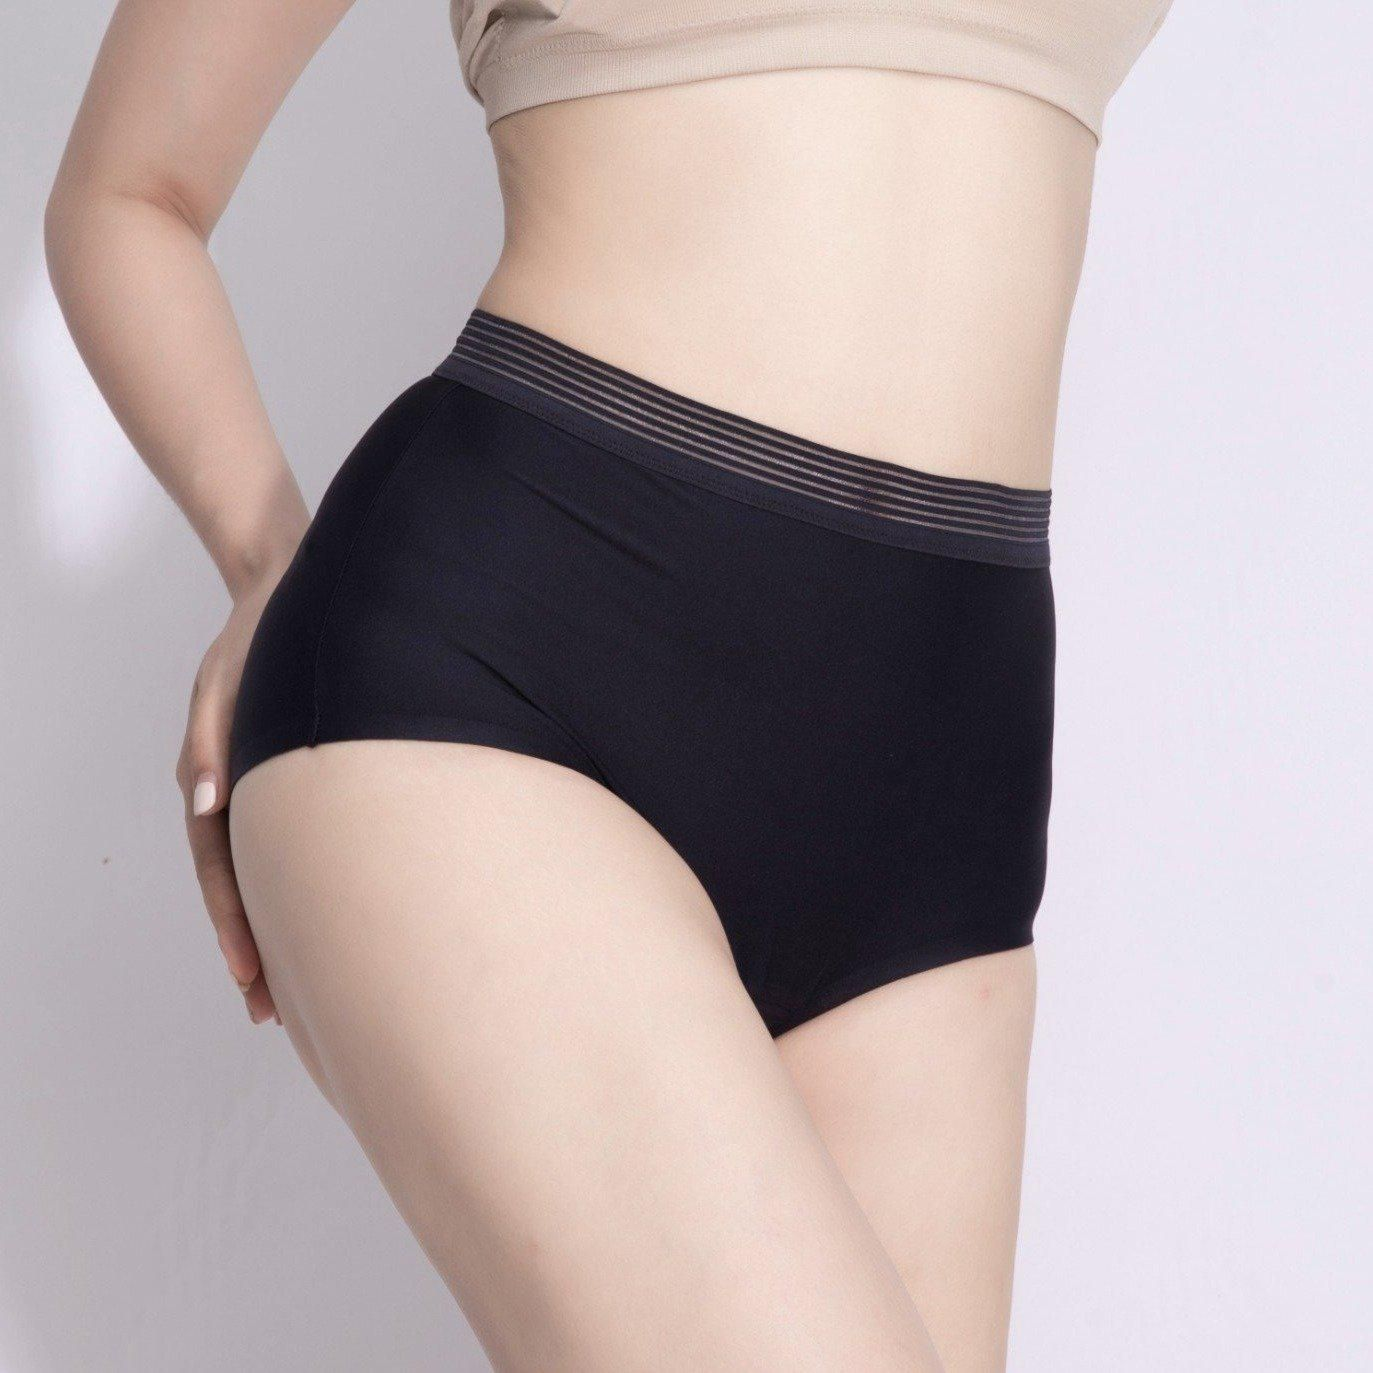 18 Best Period Underwear Styles For Every Body - Motherly